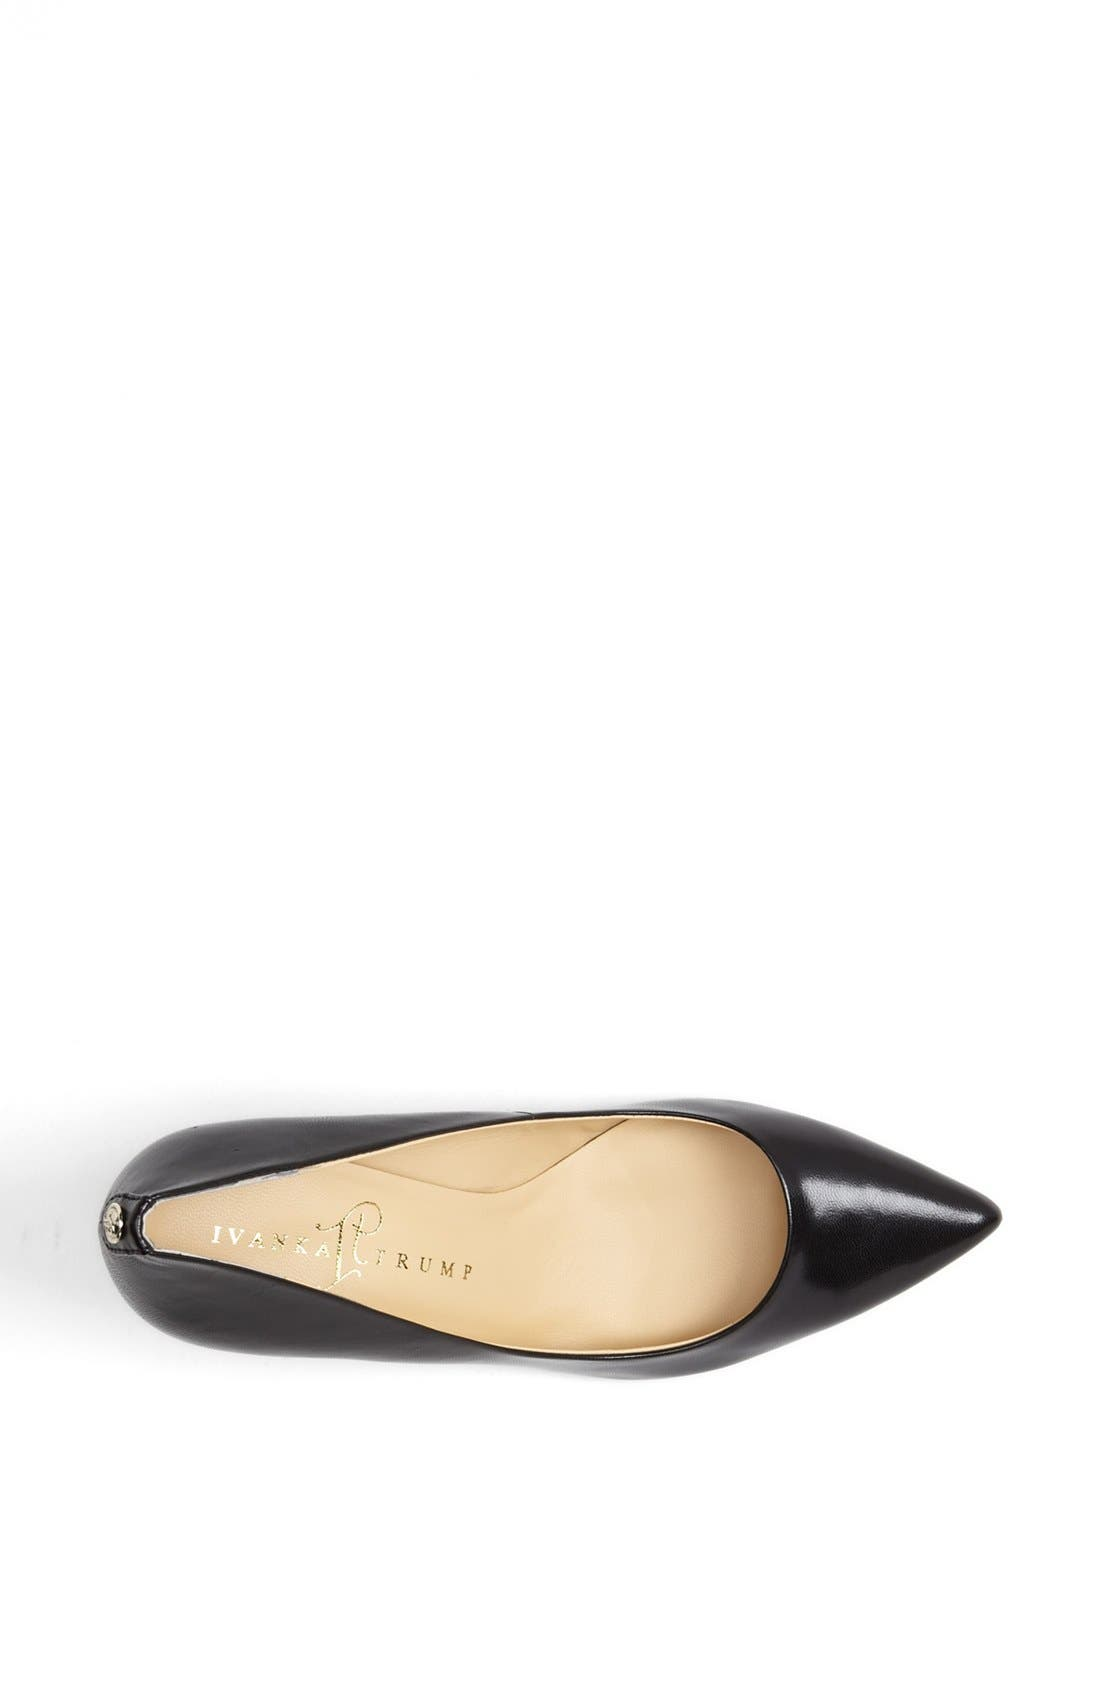 'Natalie' Pointed Toe Pump,                             Alternate thumbnail 3, color,                             Black Leather